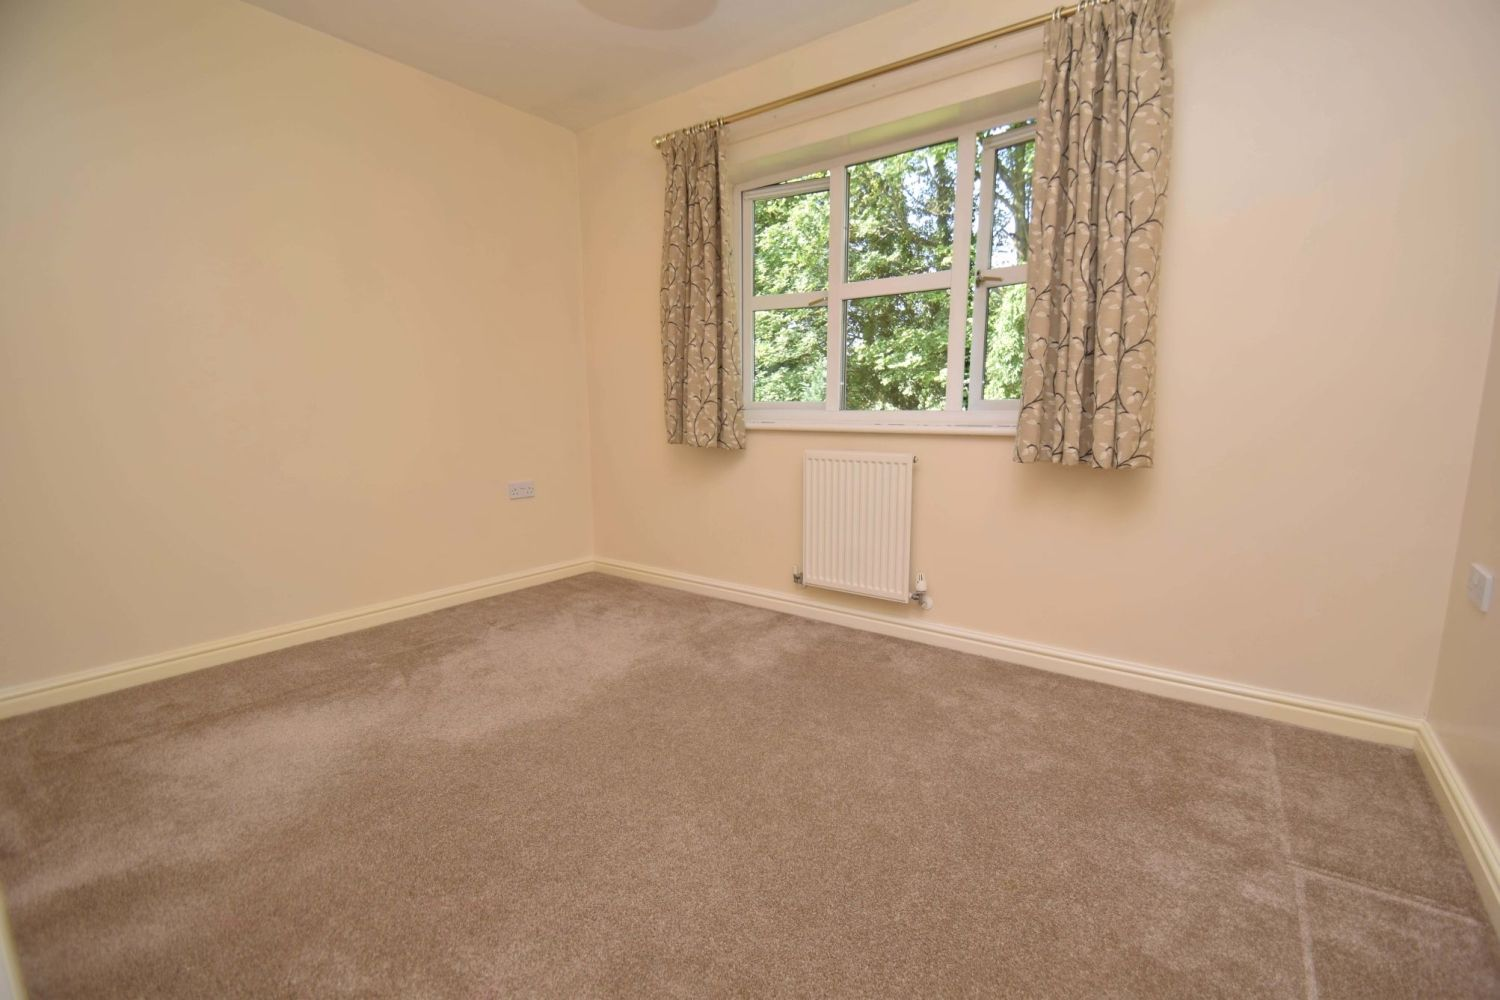 2 bed terraced for sale in Mallow Drive, Woodland Grange  - Property Image 8